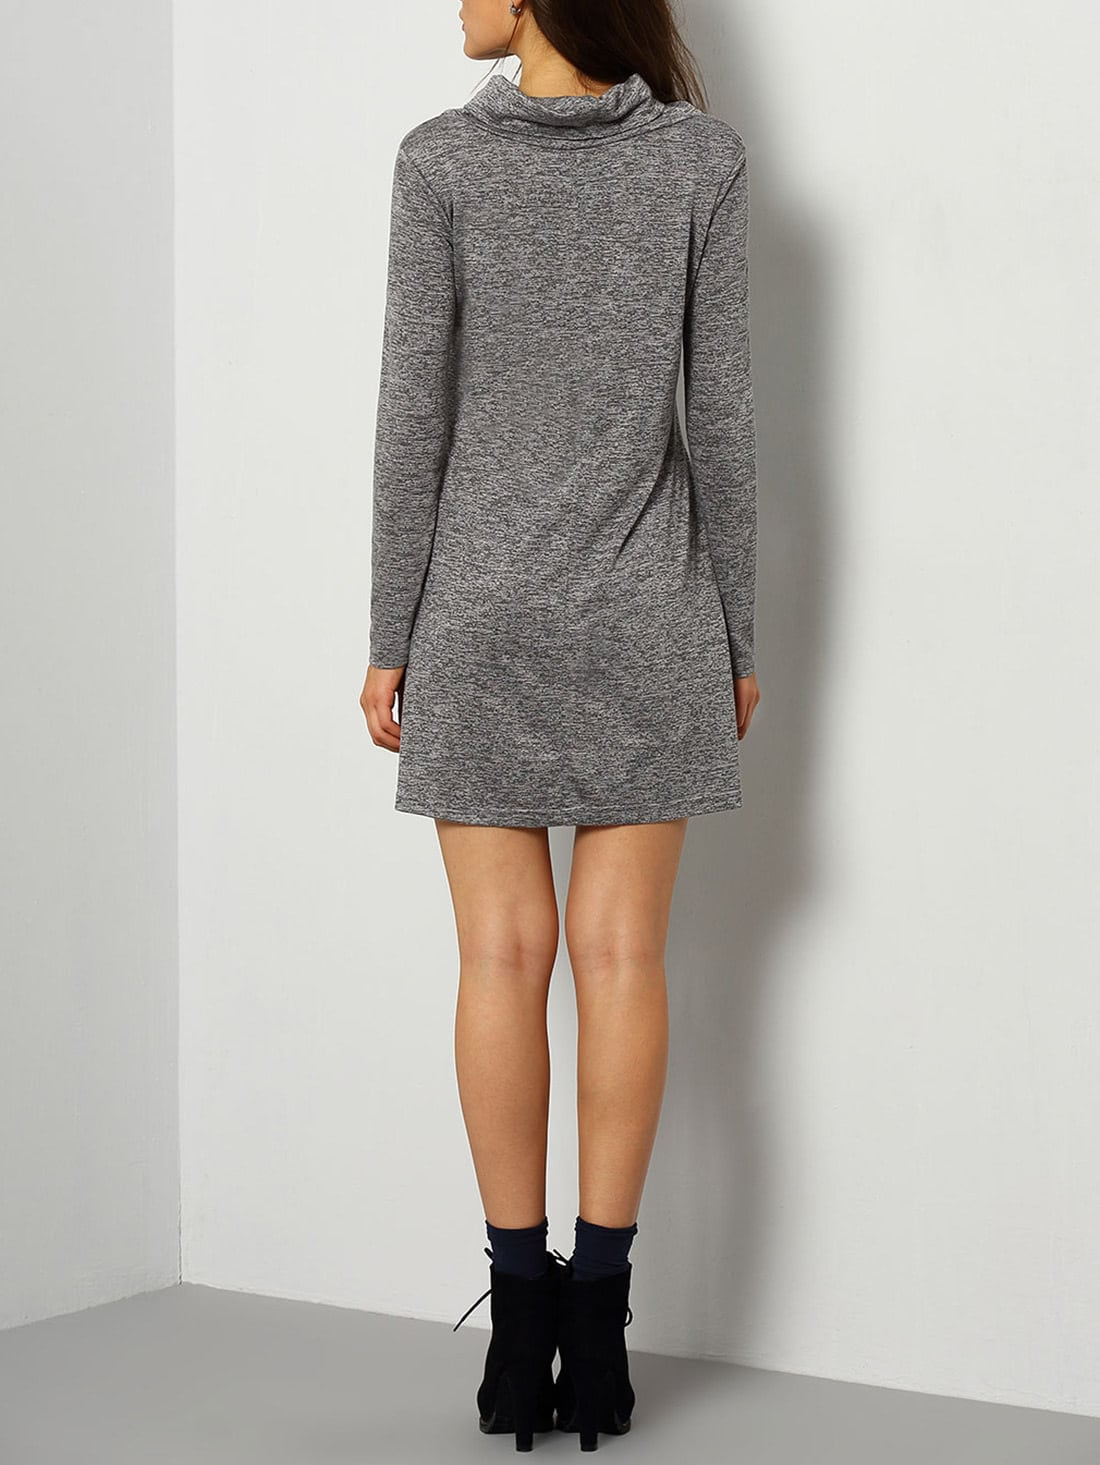 High Neck Casual Dresses